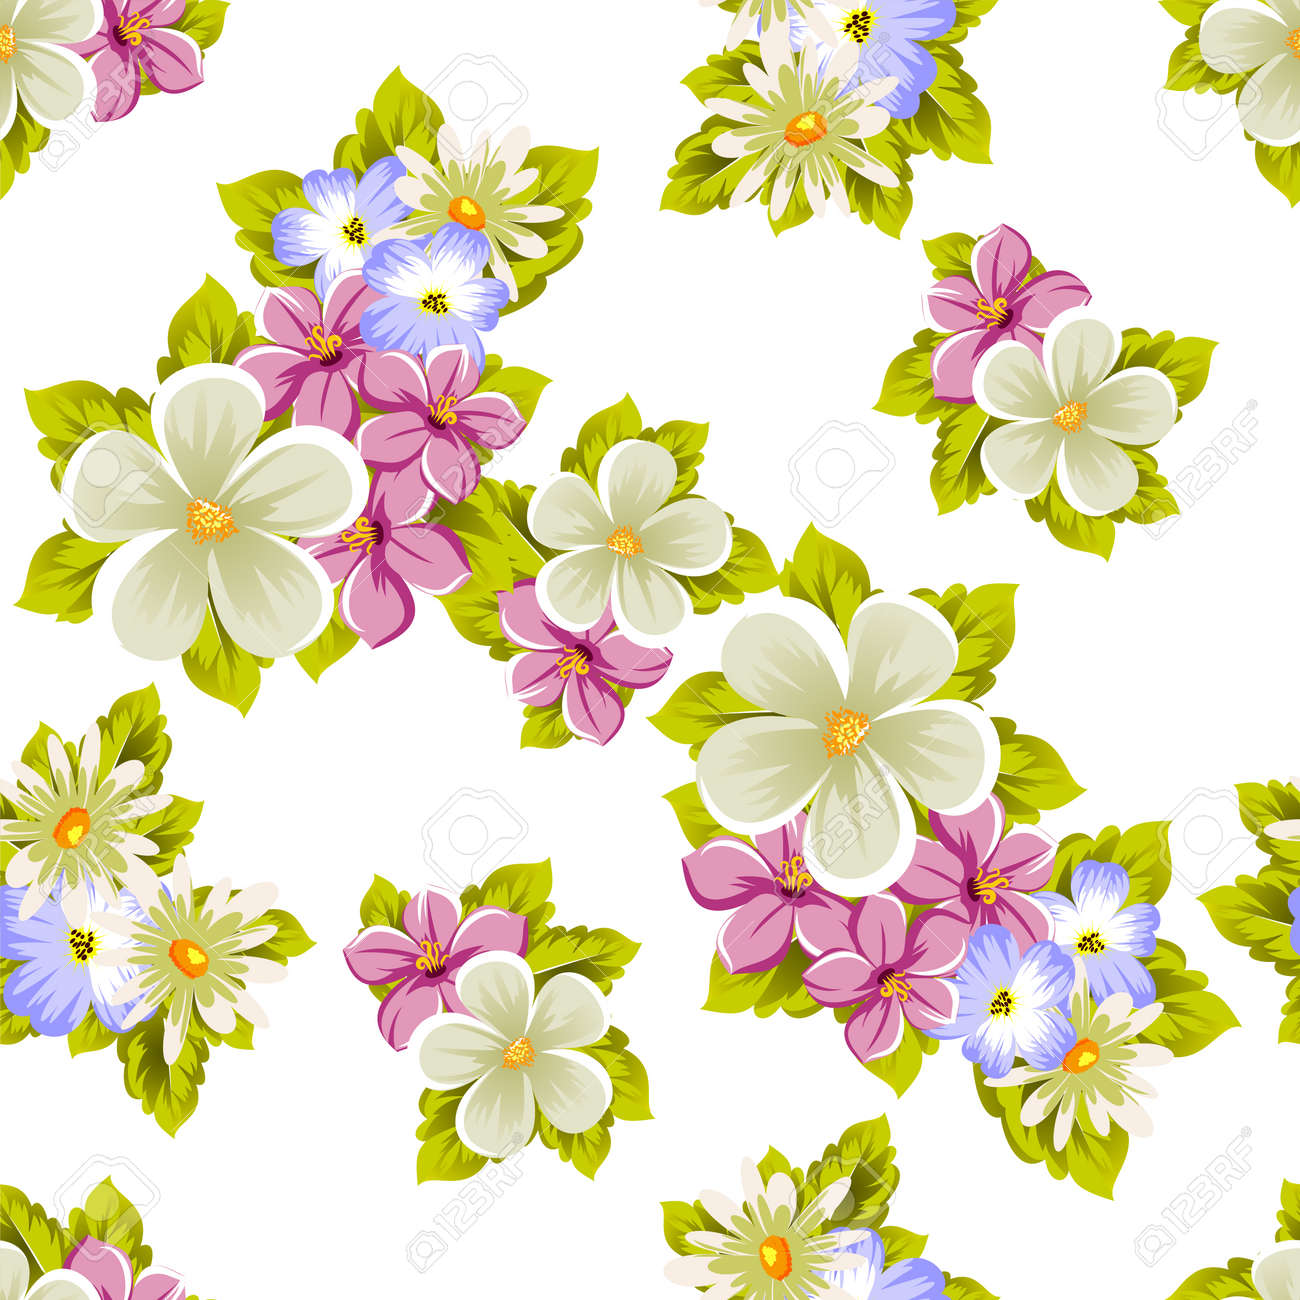 Seamless Pattern Of Flowers For Design Textures Postcards Greeting Cards Birthday